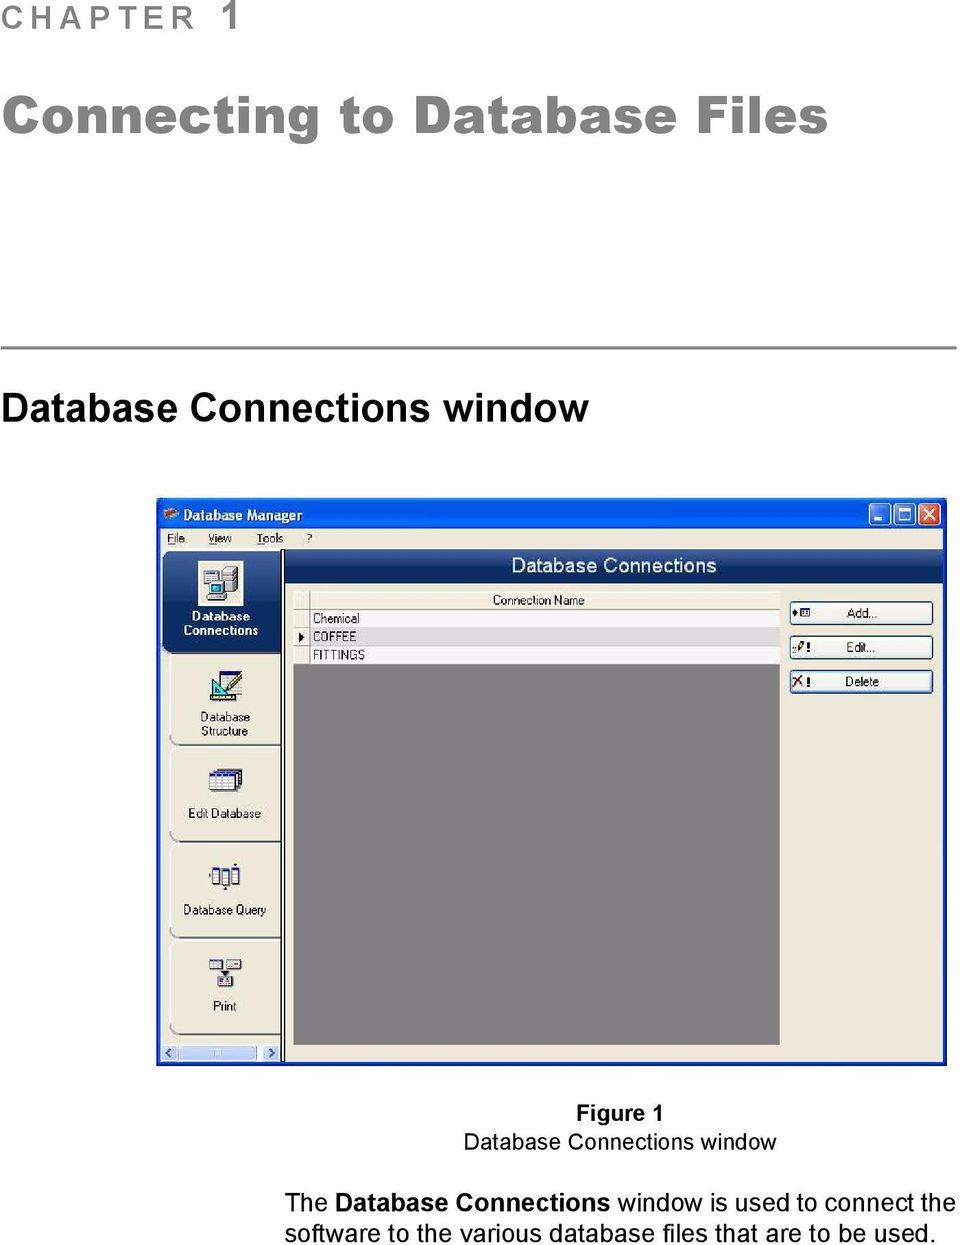 window The Database Connections window is used to